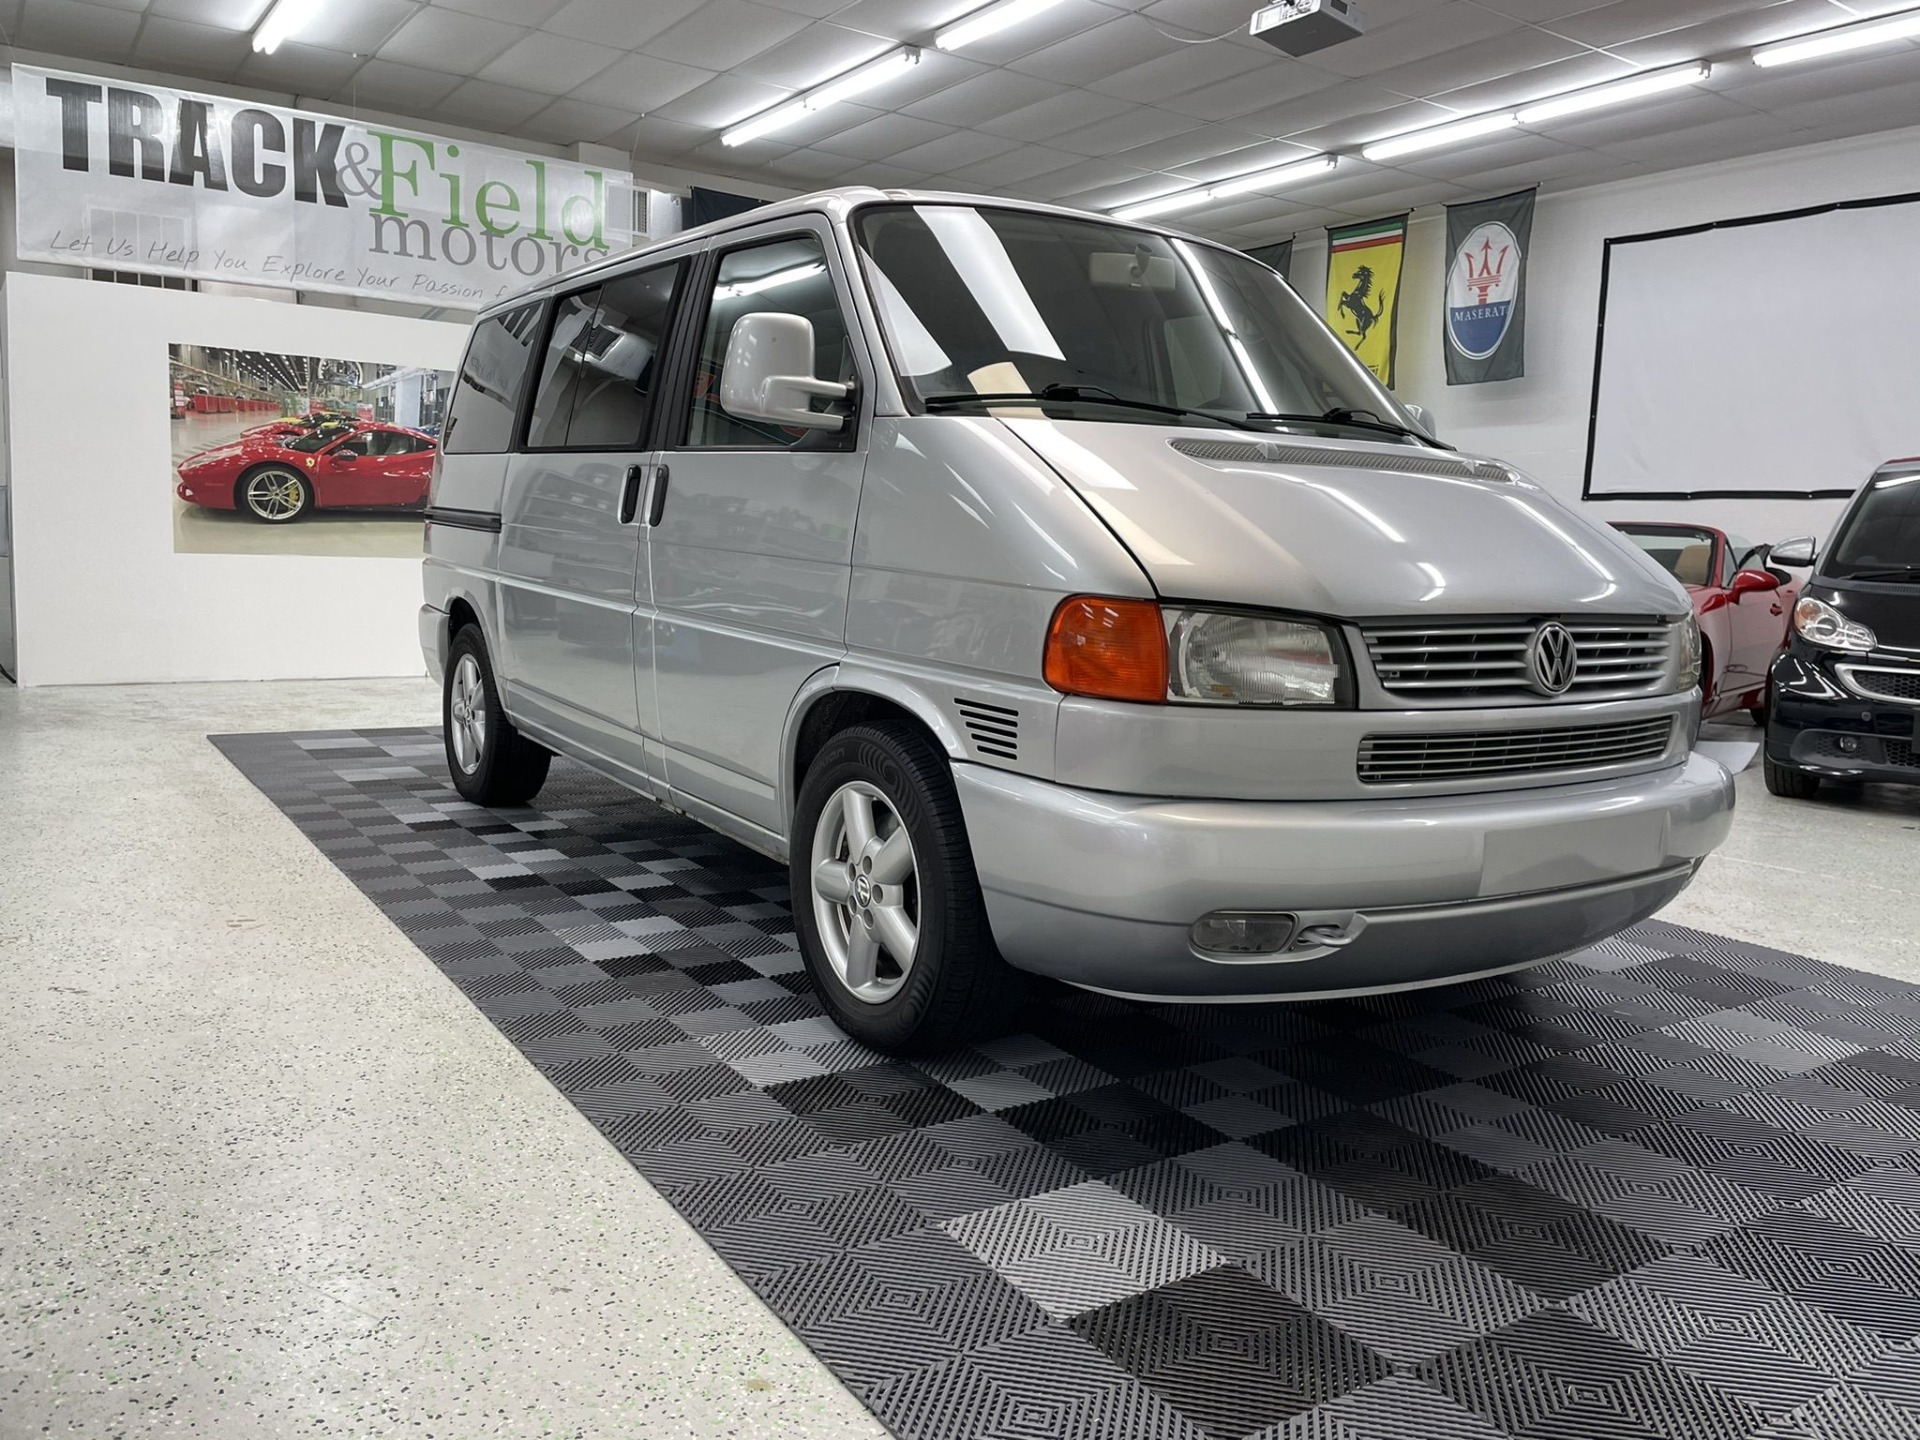 Used 2002 Volkswagen Eurovan MV Minivan for sale Sold at Track and Field Motors in Safety Harbor FL 34695 1